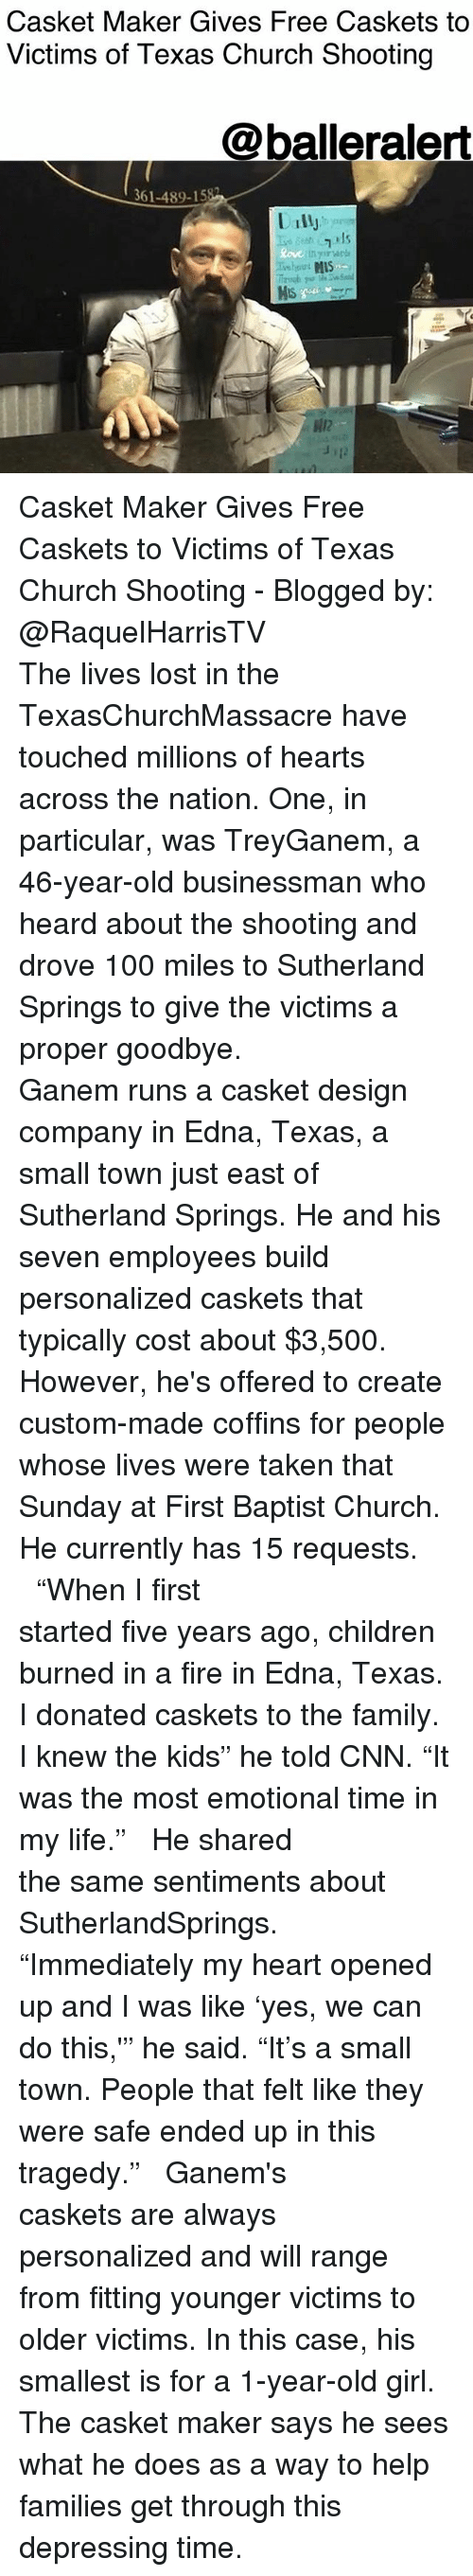 """We Can Do This: Casket Maker Gives Free Caskets to  Victims of Texas Church Shooting  @balleralert  361-489-15  Dally  12  12 Casket Maker Gives Free Caskets to Victims of Texas Church Shooting - Blogged by: @RaquelHarrisTV ⠀⠀⠀⠀⠀⠀⠀⠀⠀ ⠀⠀⠀⠀⠀⠀⠀⠀⠀ The lives lost in the TexasChurchMassacre have touched millions of hearts across the nation. One, in particular, was TreyGanem, a 46-year-old businessman who heard about the shooting and drove 100 miles to Sutherland Springs to give the victims a proper goodbye. ⠀⠀⠀⠀⠀⠀⠀⠀⠀ ⠀⠀⠀⠀⠀⠀⠀⠀⠀ Ganem runs a casket design company in Edna, Texas, a small town just east of Sutherland Springs. He and his seven employees build personalized caskets that typically cost about $3,500. However, he's offered to create custom-made coffins for people whose lives were taken that Sunday at First Baptist Church. He currently has 15 requests. ⠀⠀⠀⠀⠀⠀⠀⠀⠀ ⠀⠀⠀⠀⠀⠀⠀⠀⠀ """"When I first started five years ago, children burned in a fire in Edna, Texas. I donated caskets to the family. I knew the kids"""" he told CNN. """"It was the most emotional time in my life."""" ⠀⠀⠀⠀⠀⠀⠀⠀⠀ ⠀⠀⠀⠀⠀⠀⠀⠀⠀ He shared the same sentiments about SutherlandSprings. ⠀⠀⠀⠀⠀⠀⠀⠀⠀ ⠀⠀⠀⠀⠀⠀⠀⠀⠀ """"Immediately my heart opened up and I was like 'yes, we can do this,'"""" he said. """"It's a small town. People that felt like they were safe ended up in this tragedy."""" ⠀⠀⠀⠀⠀⠀⠀⠀⠀ ⠀⠀⠀⠀⠀⠀⠀⠀⠀ Ganem's caskets are always personalized and will range from fitting younger victims to older victims. In this case, his smallest is for a 1-year-old girl. The casket maker says he sees what he does as a way to help families get through this depressing time."""